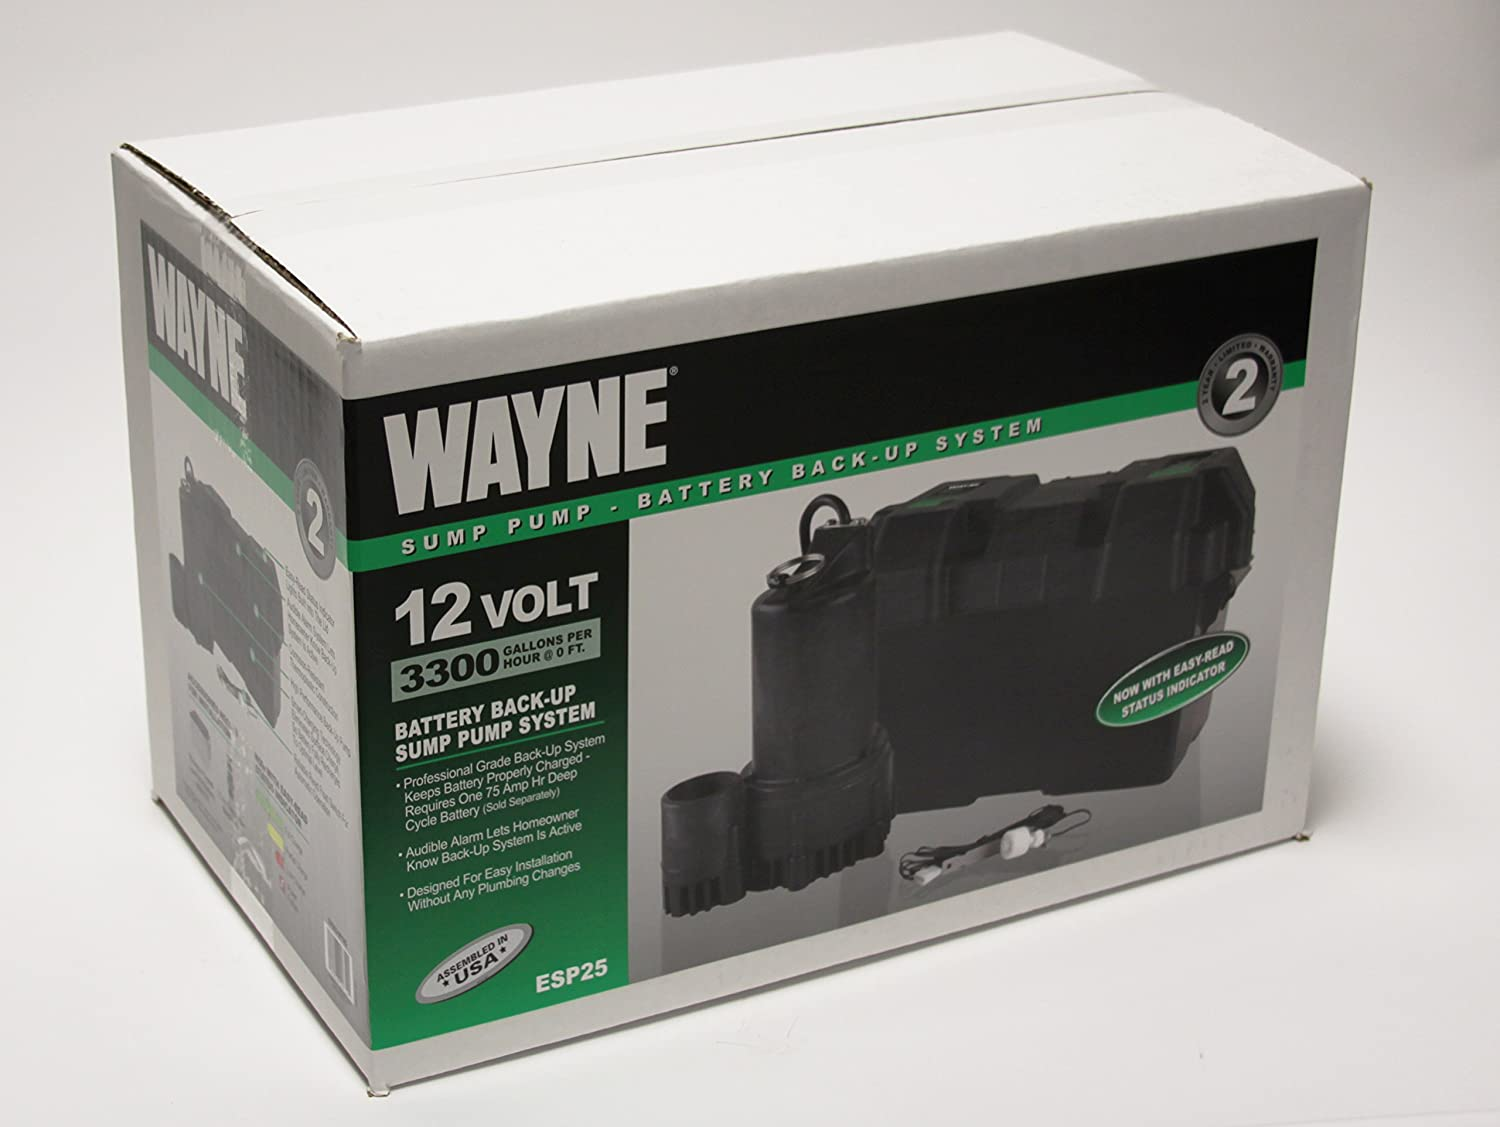 Best sump pump backup system - Wayne Esp25 12 Volt Battery Back Up Sump Pump System With Audible Alarm Sump Pump Battery Backup Amazon Com